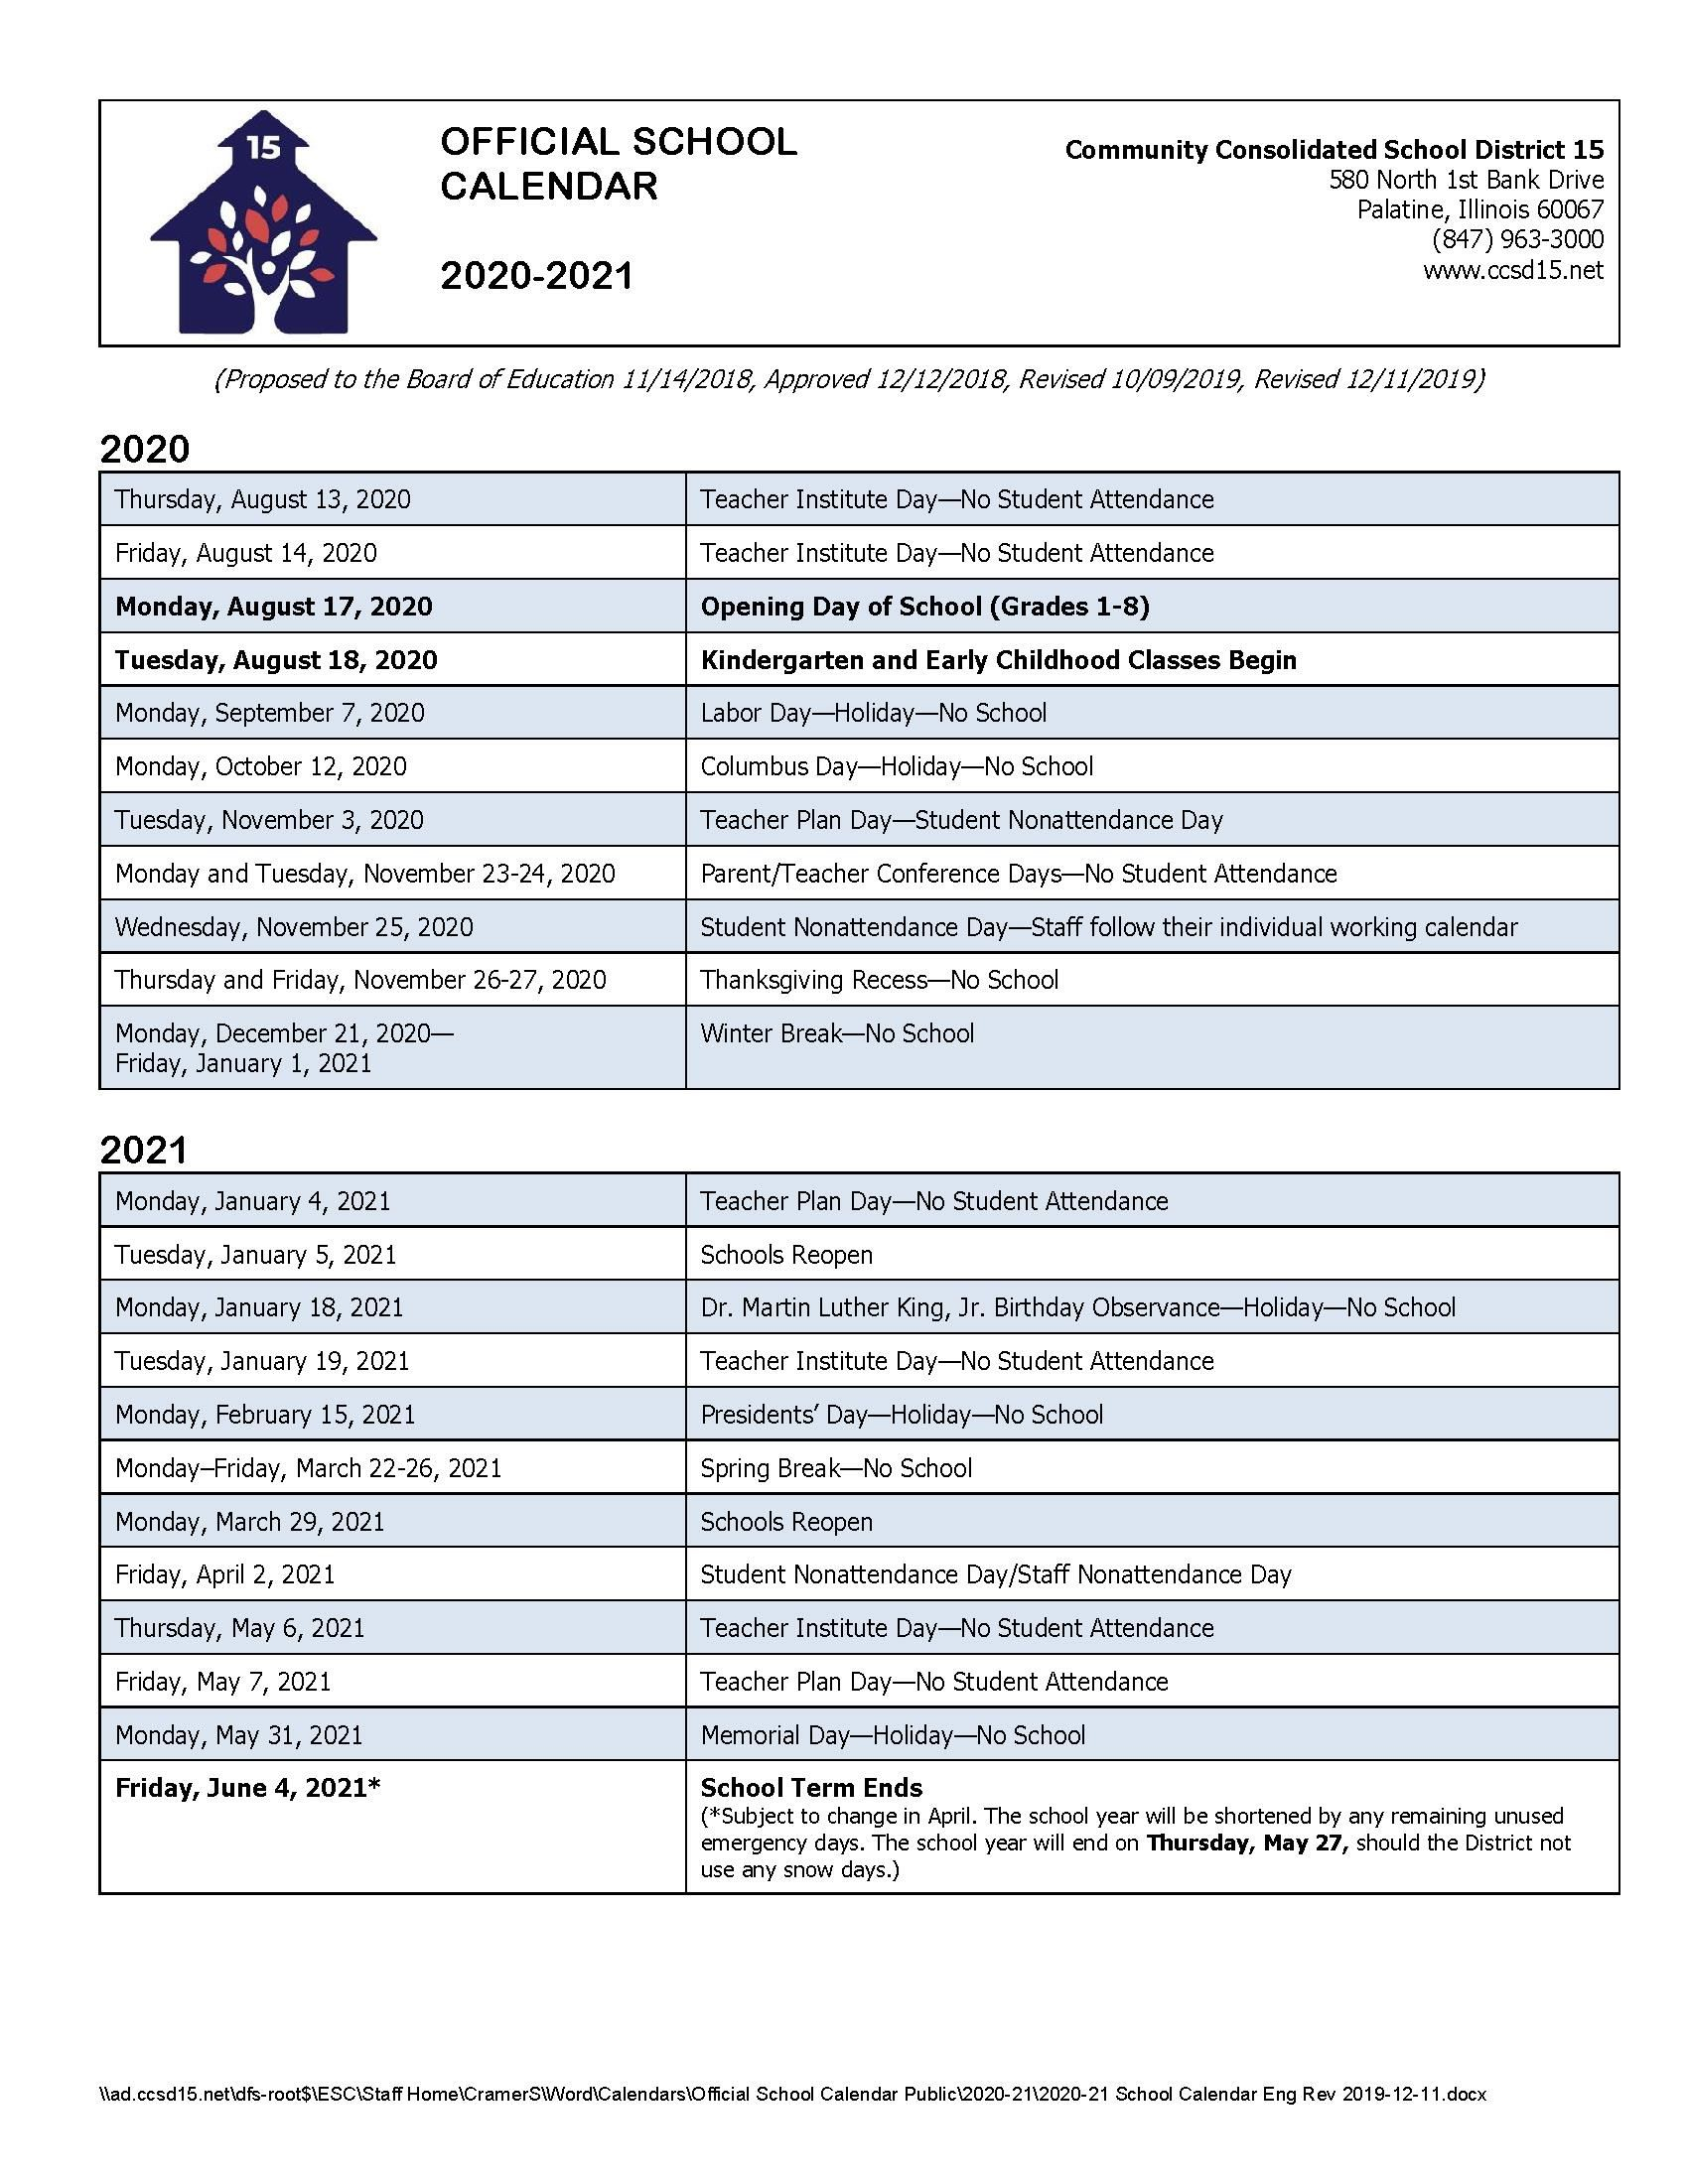 Calendars / 2020-21 Official School Calendar with Chamberlain University Schedule 2021